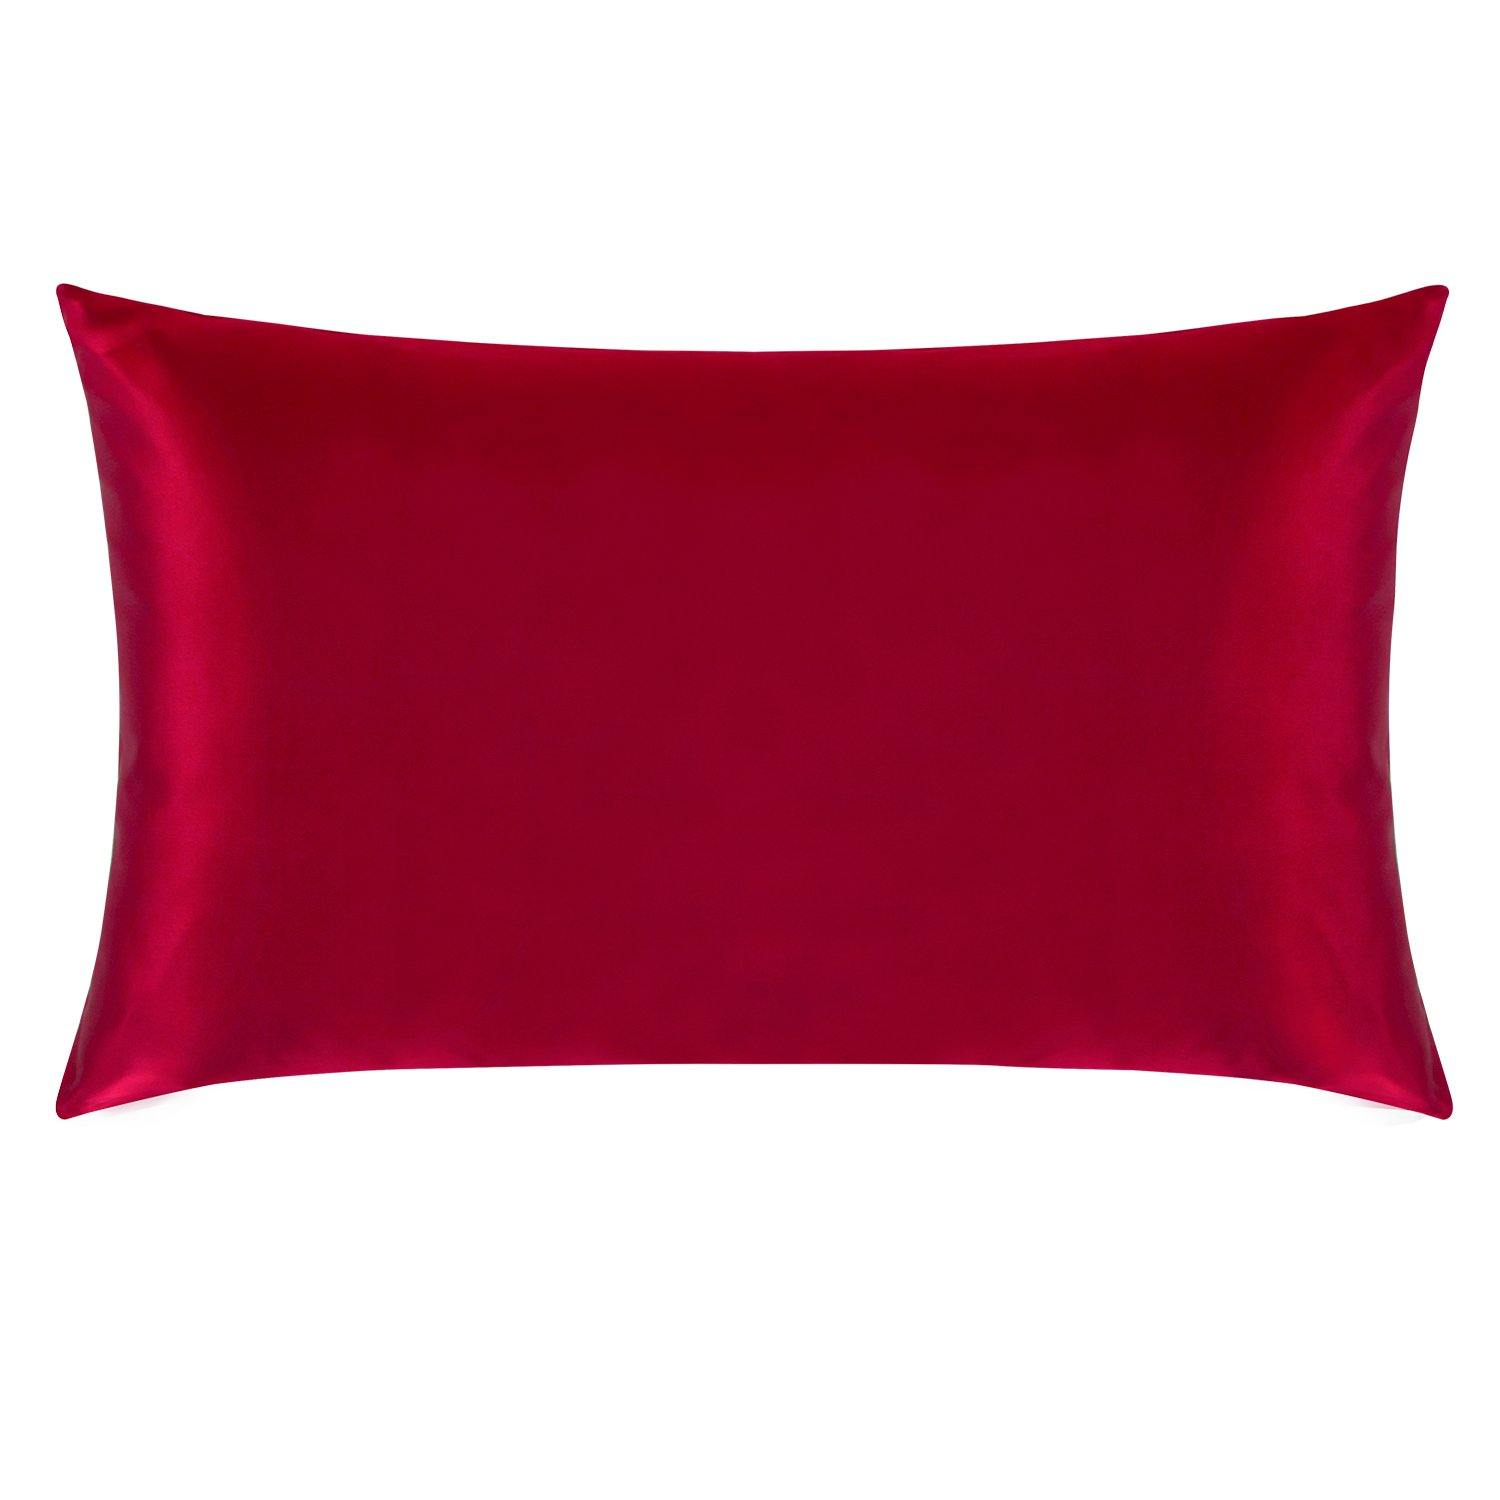 NTBAY 100% Mulberry Silk Queen/King Size Pillowcases